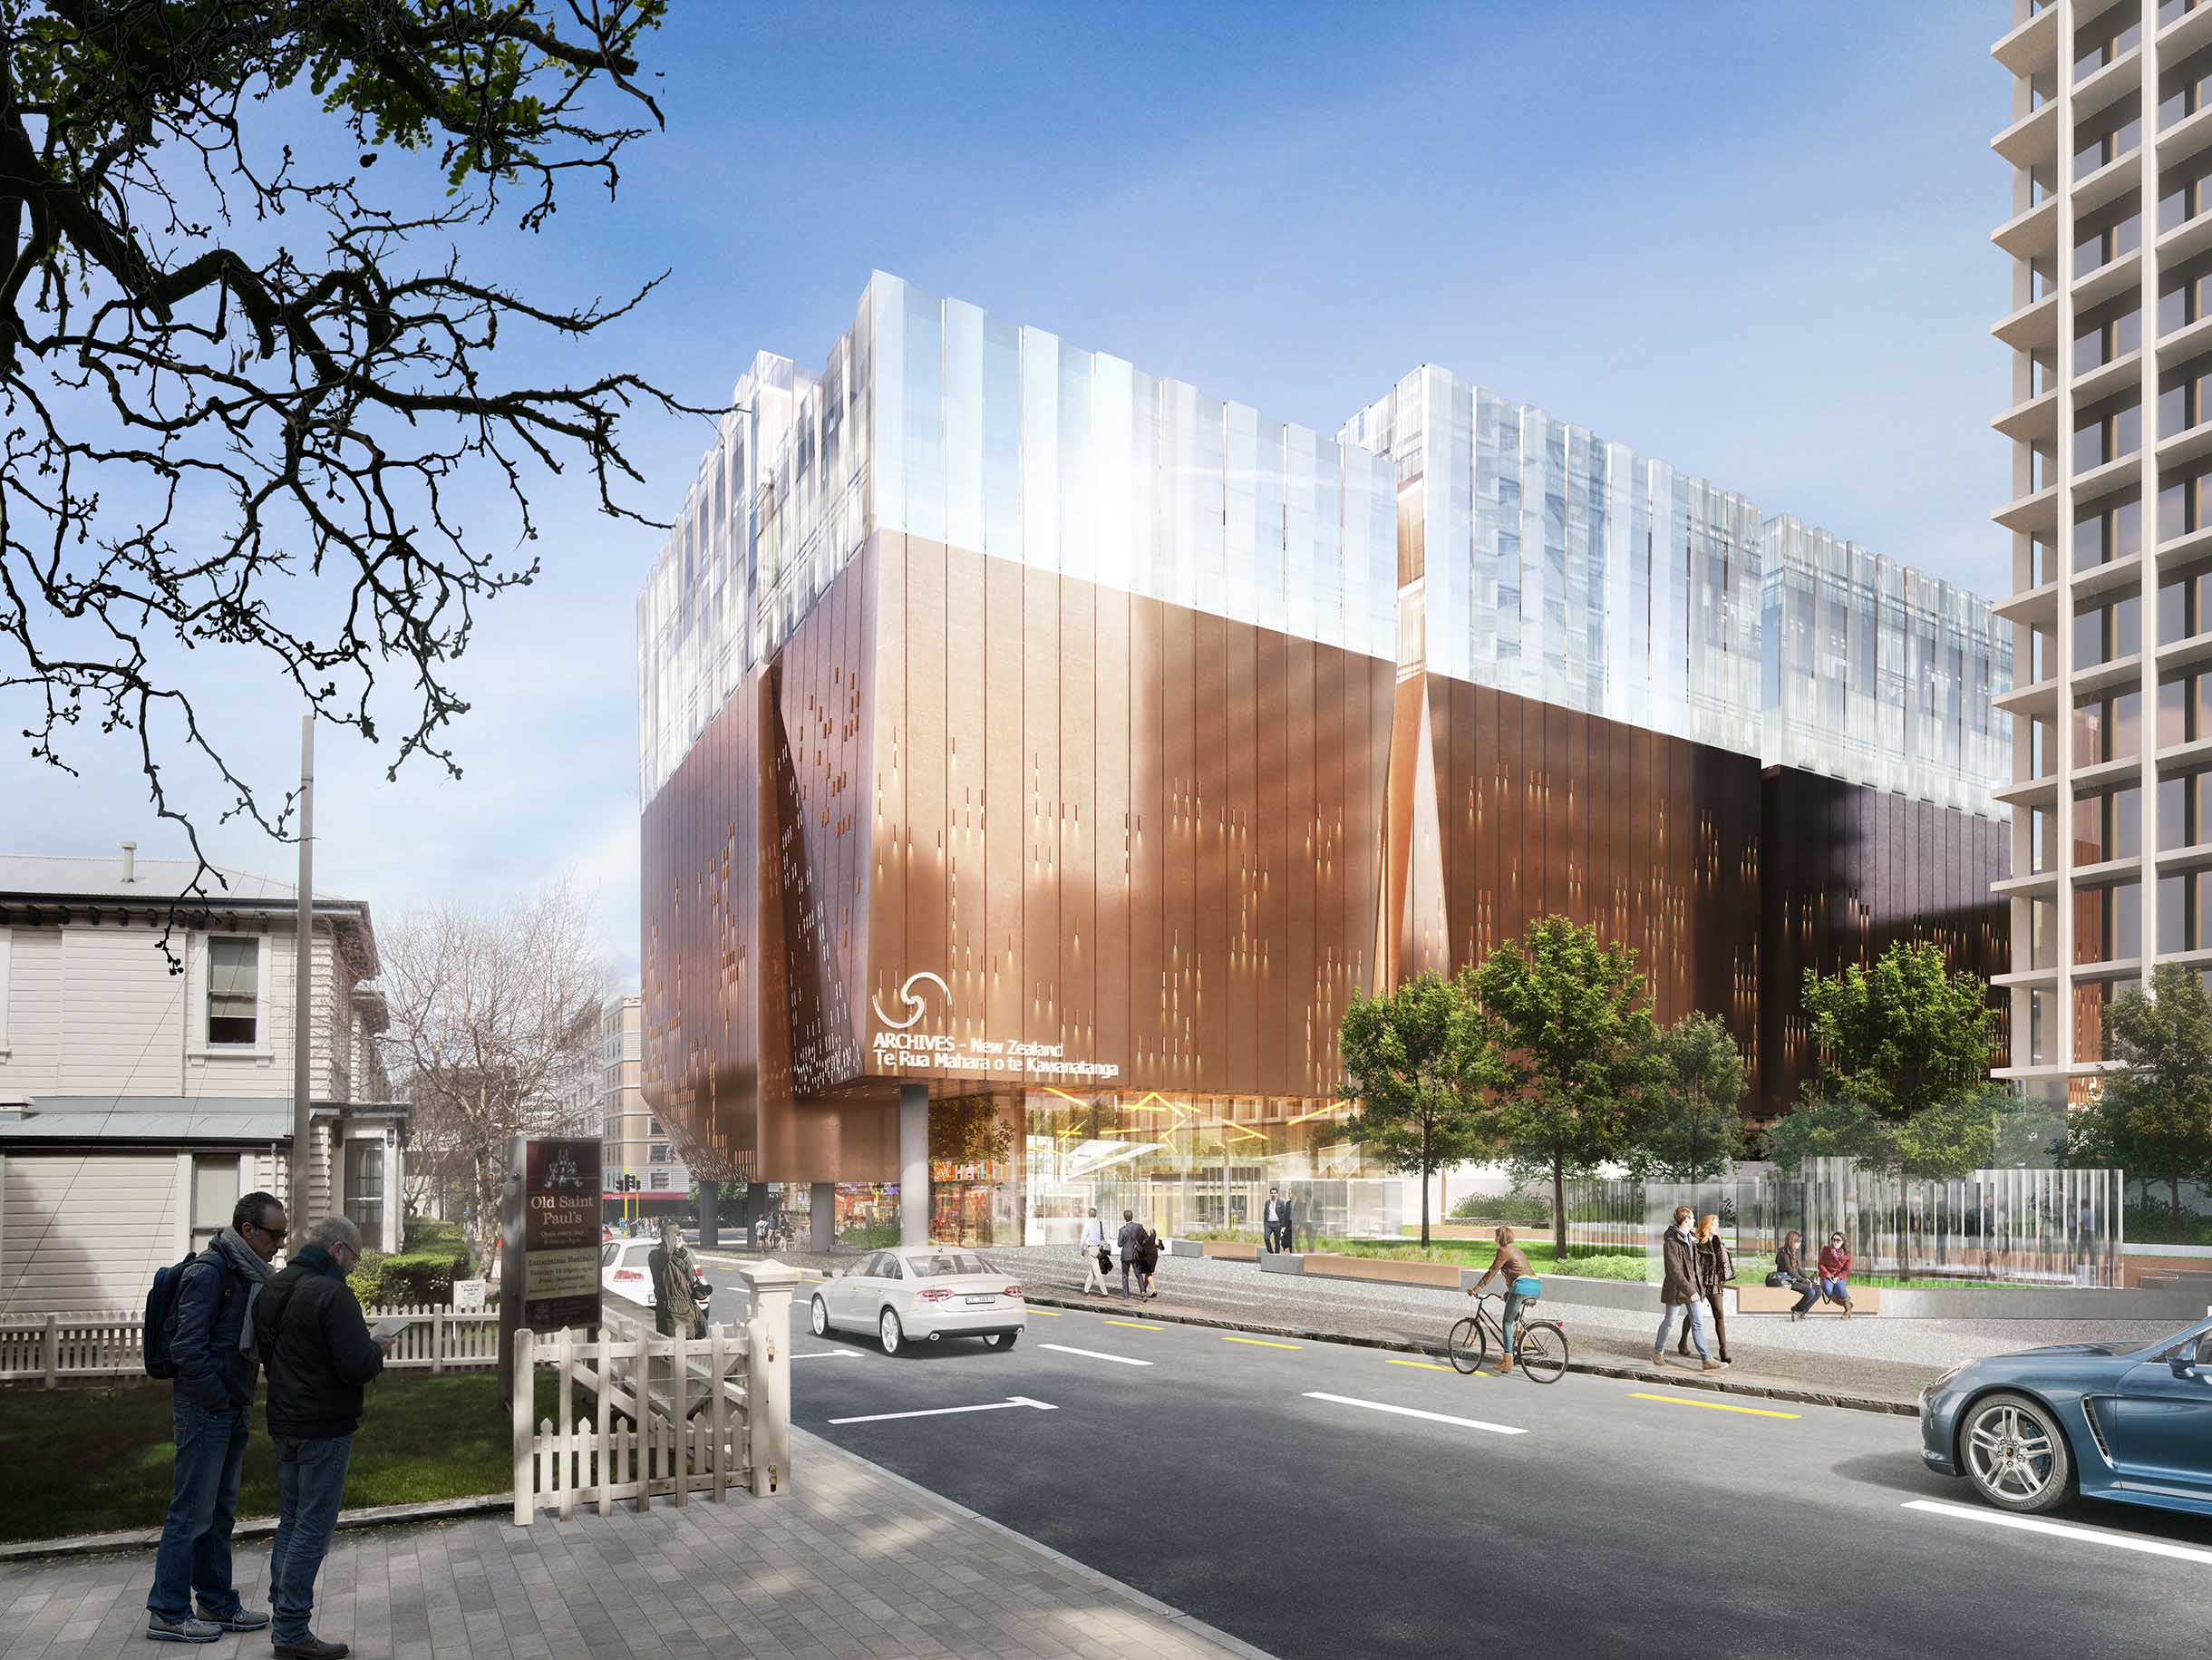 Concept image showing the new Archives NZ building